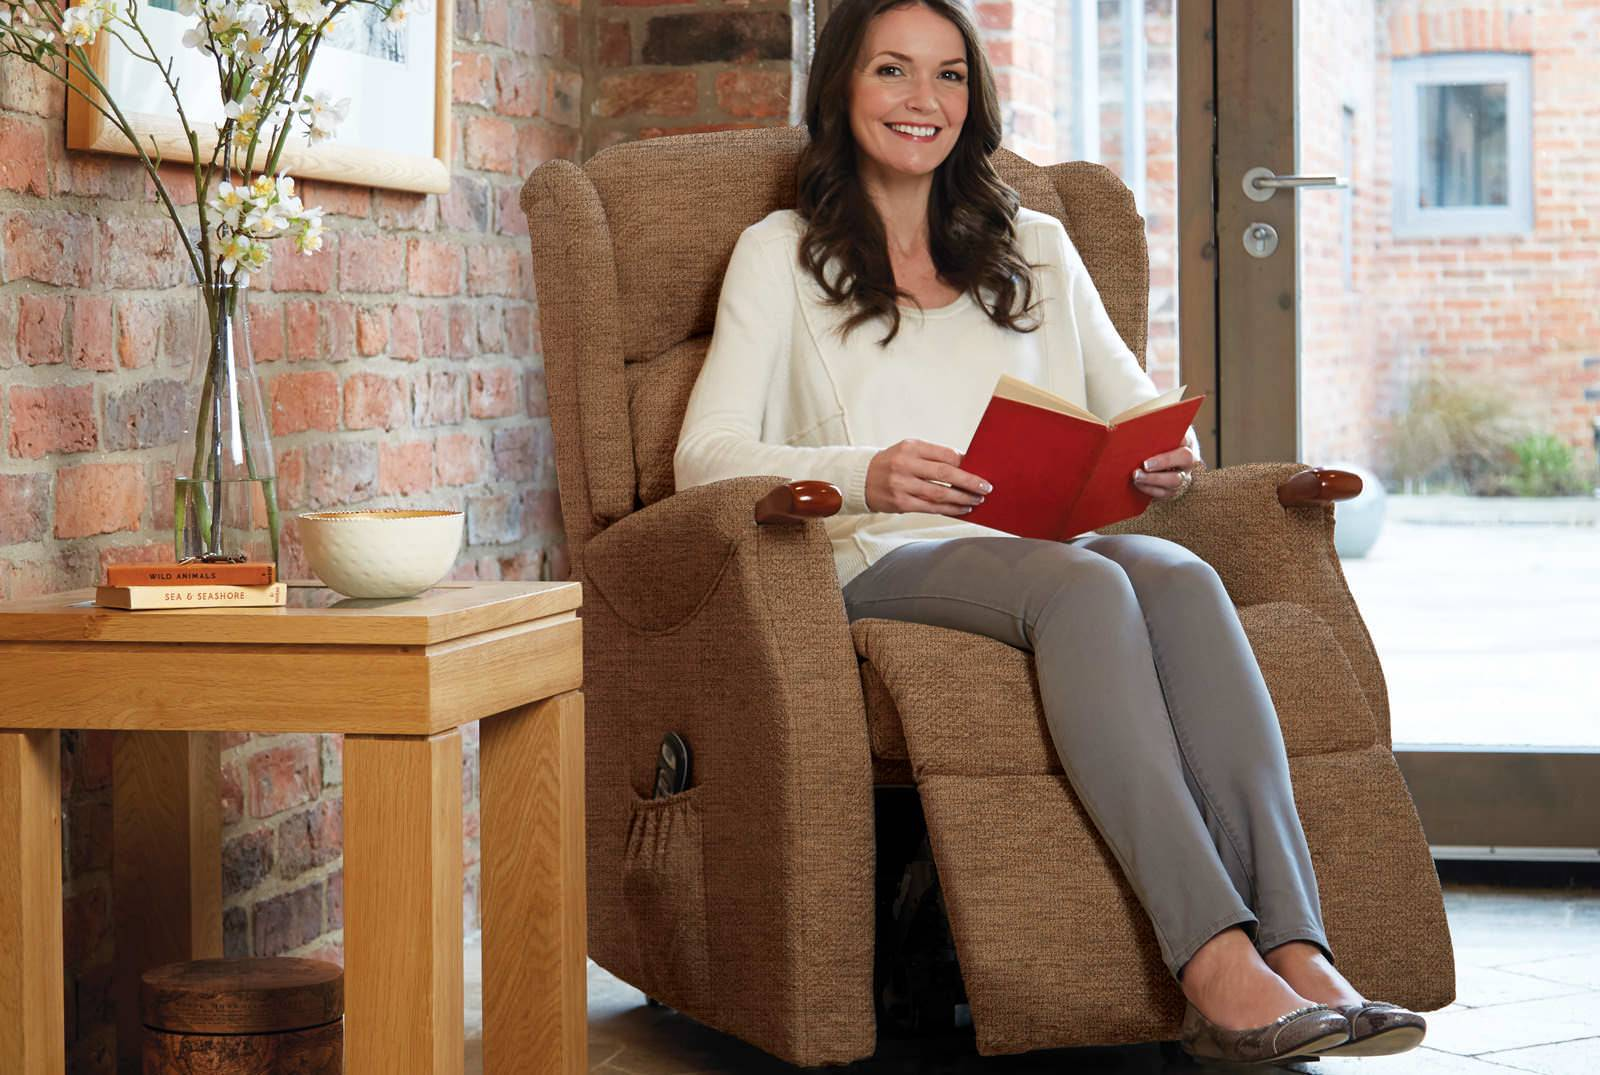 Linton Single Motor Riser Recliner in Boucle Cocoa